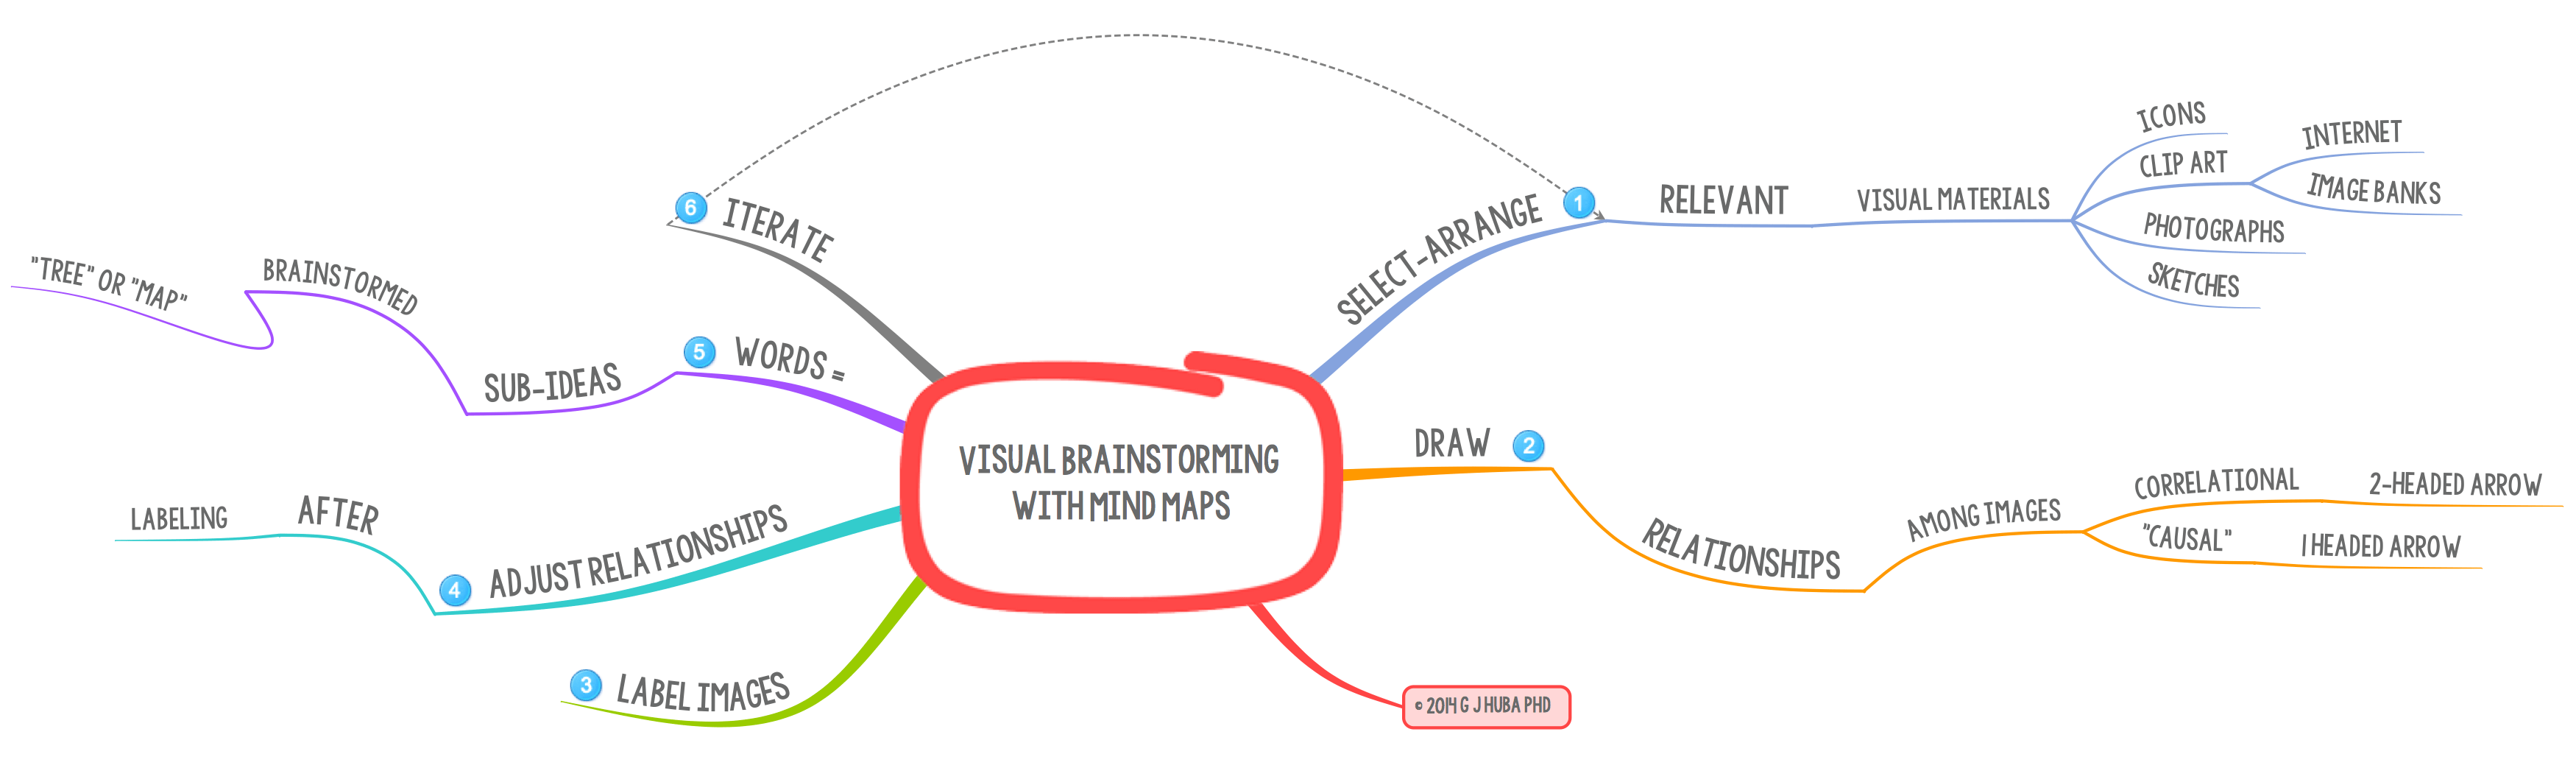 Visual Brainstorming With Mindmaps